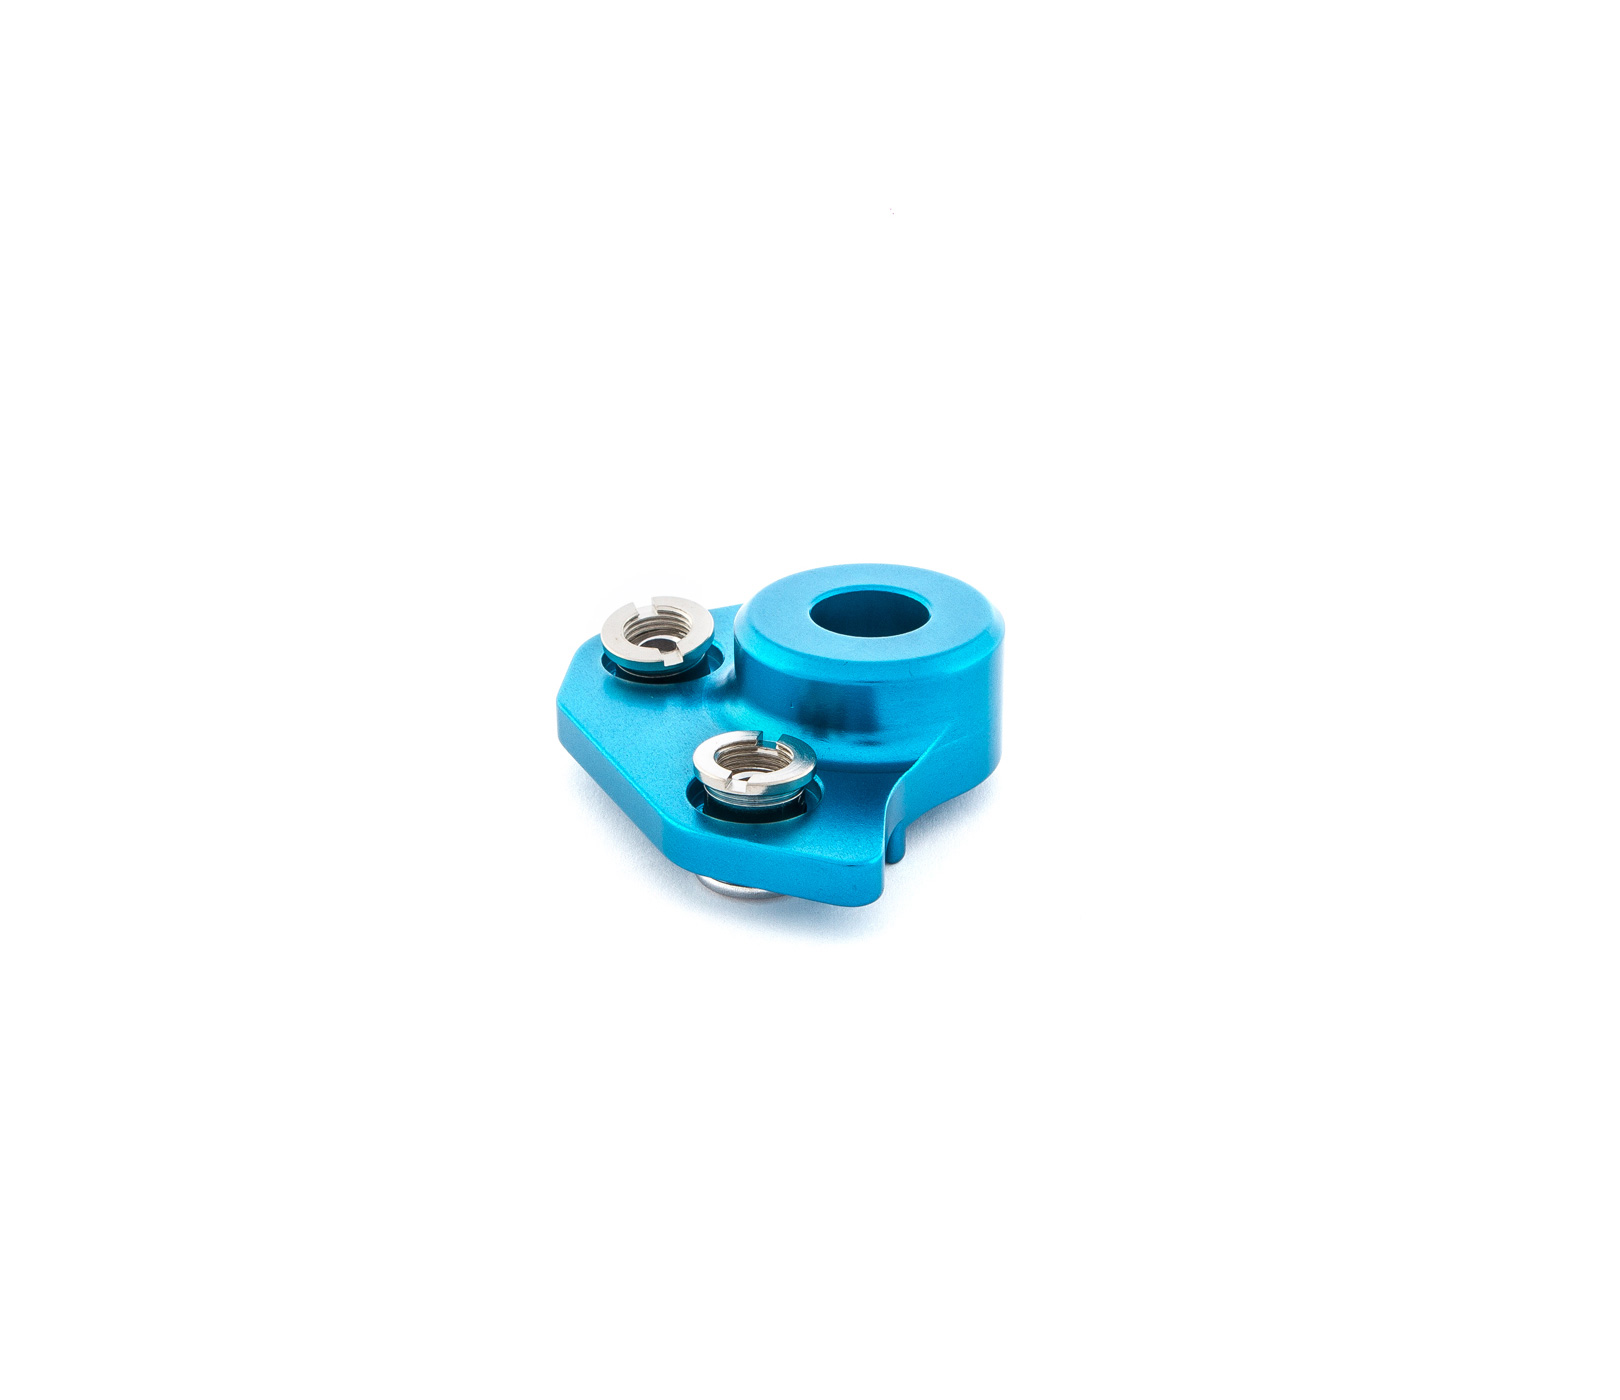 BLUE LEFT DERAILLEUR HANGER FOR 142MM AXLE FOR RALLON MODELS